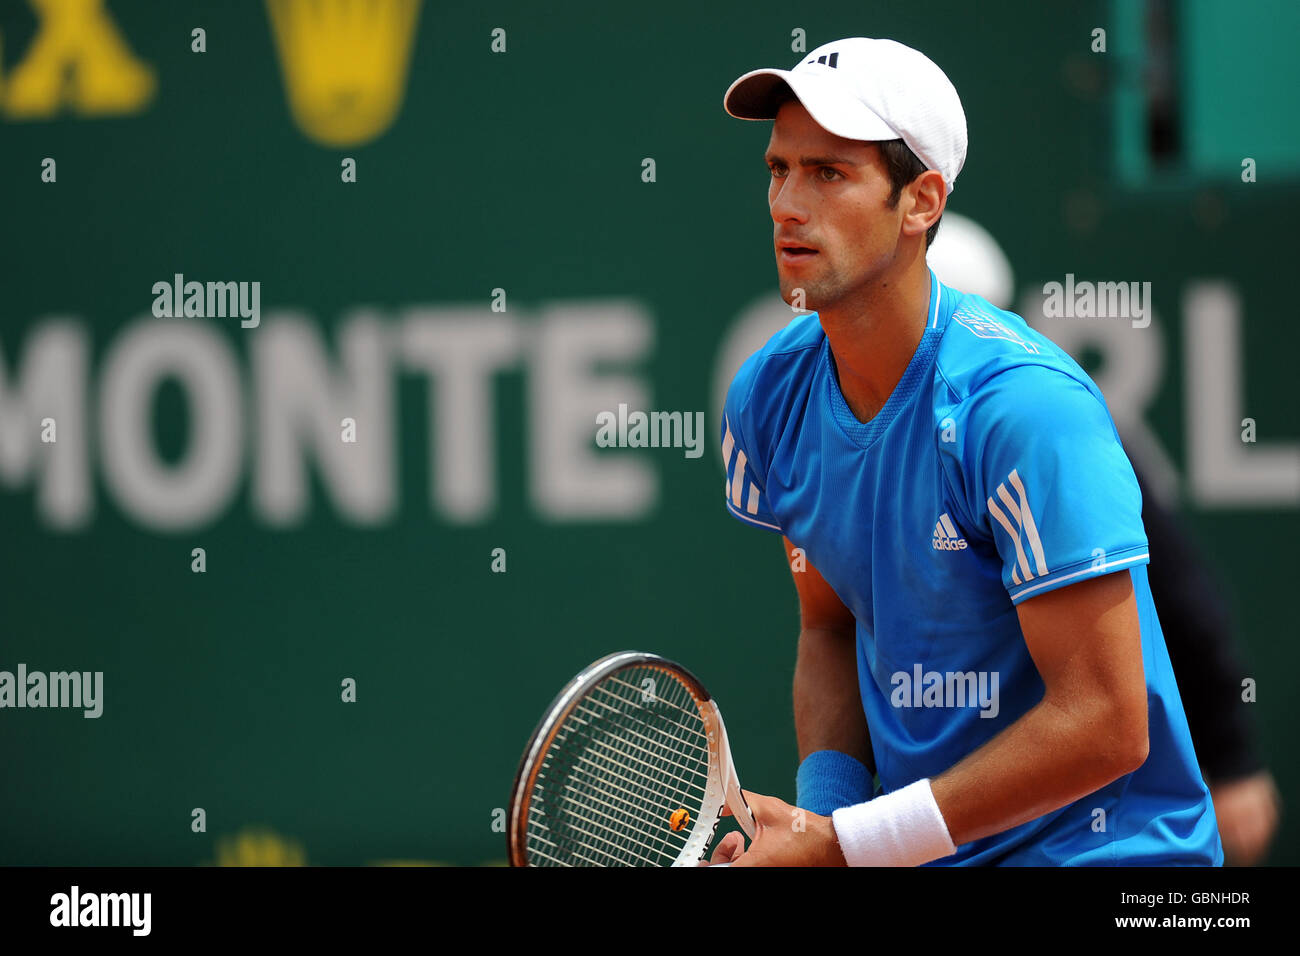 Tennis - ATP World Tour Masters - Monte-Carlo - Semi Final - Novak Djokovic v Stanislas Wawrinka - Stock Image